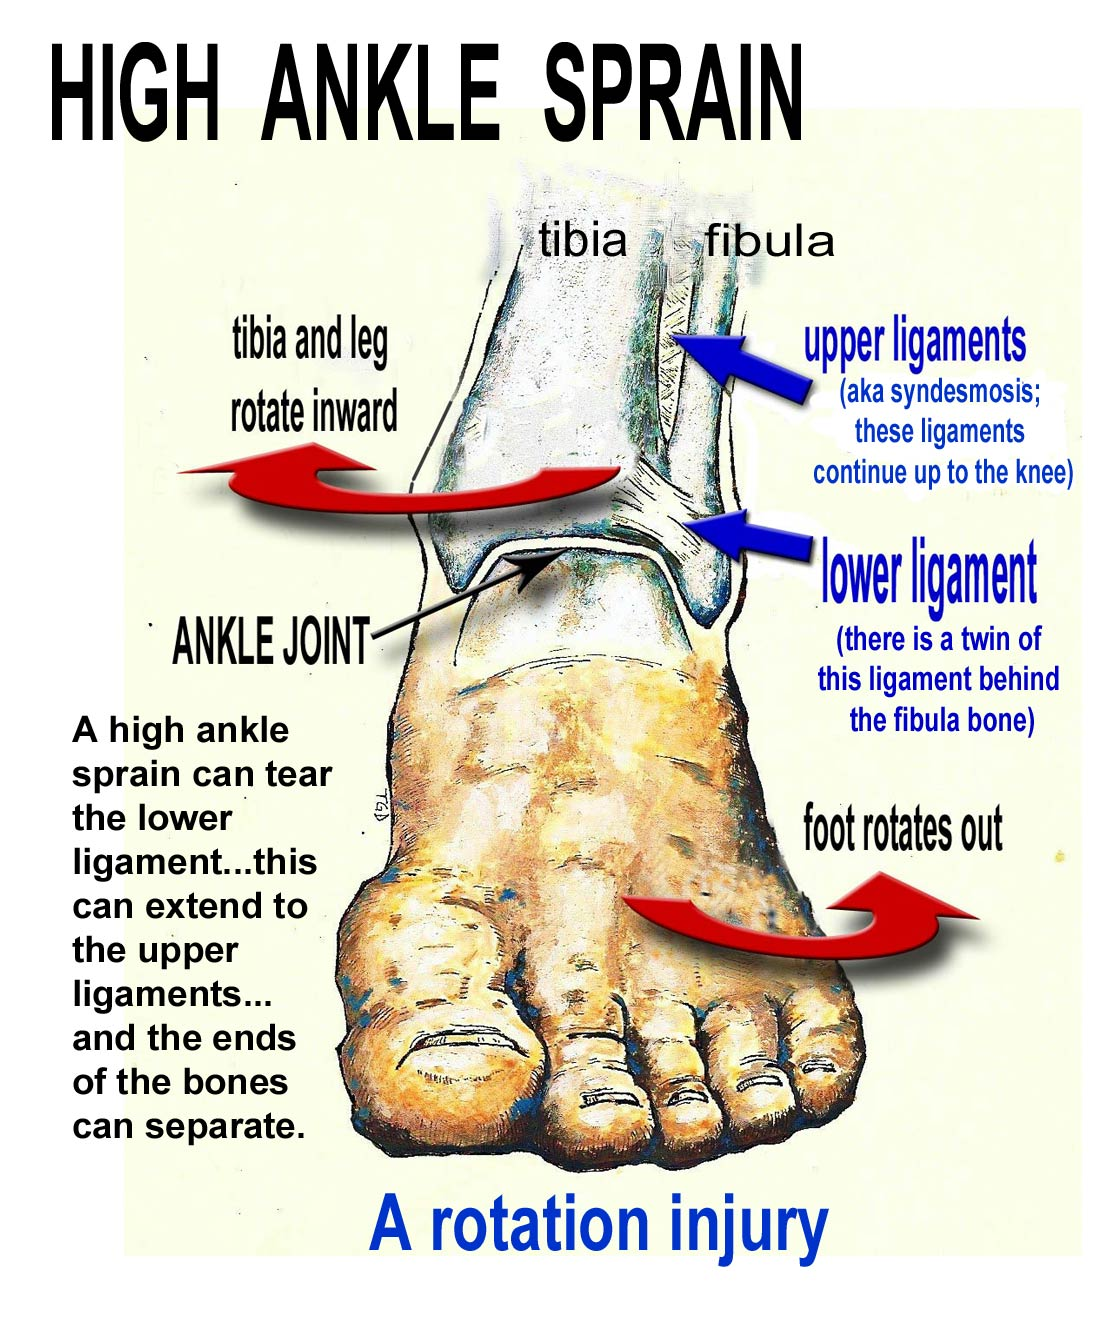 high ankle sprain, high injury ankle, upper ankle injury, treatment, symptoms ankle high sprain